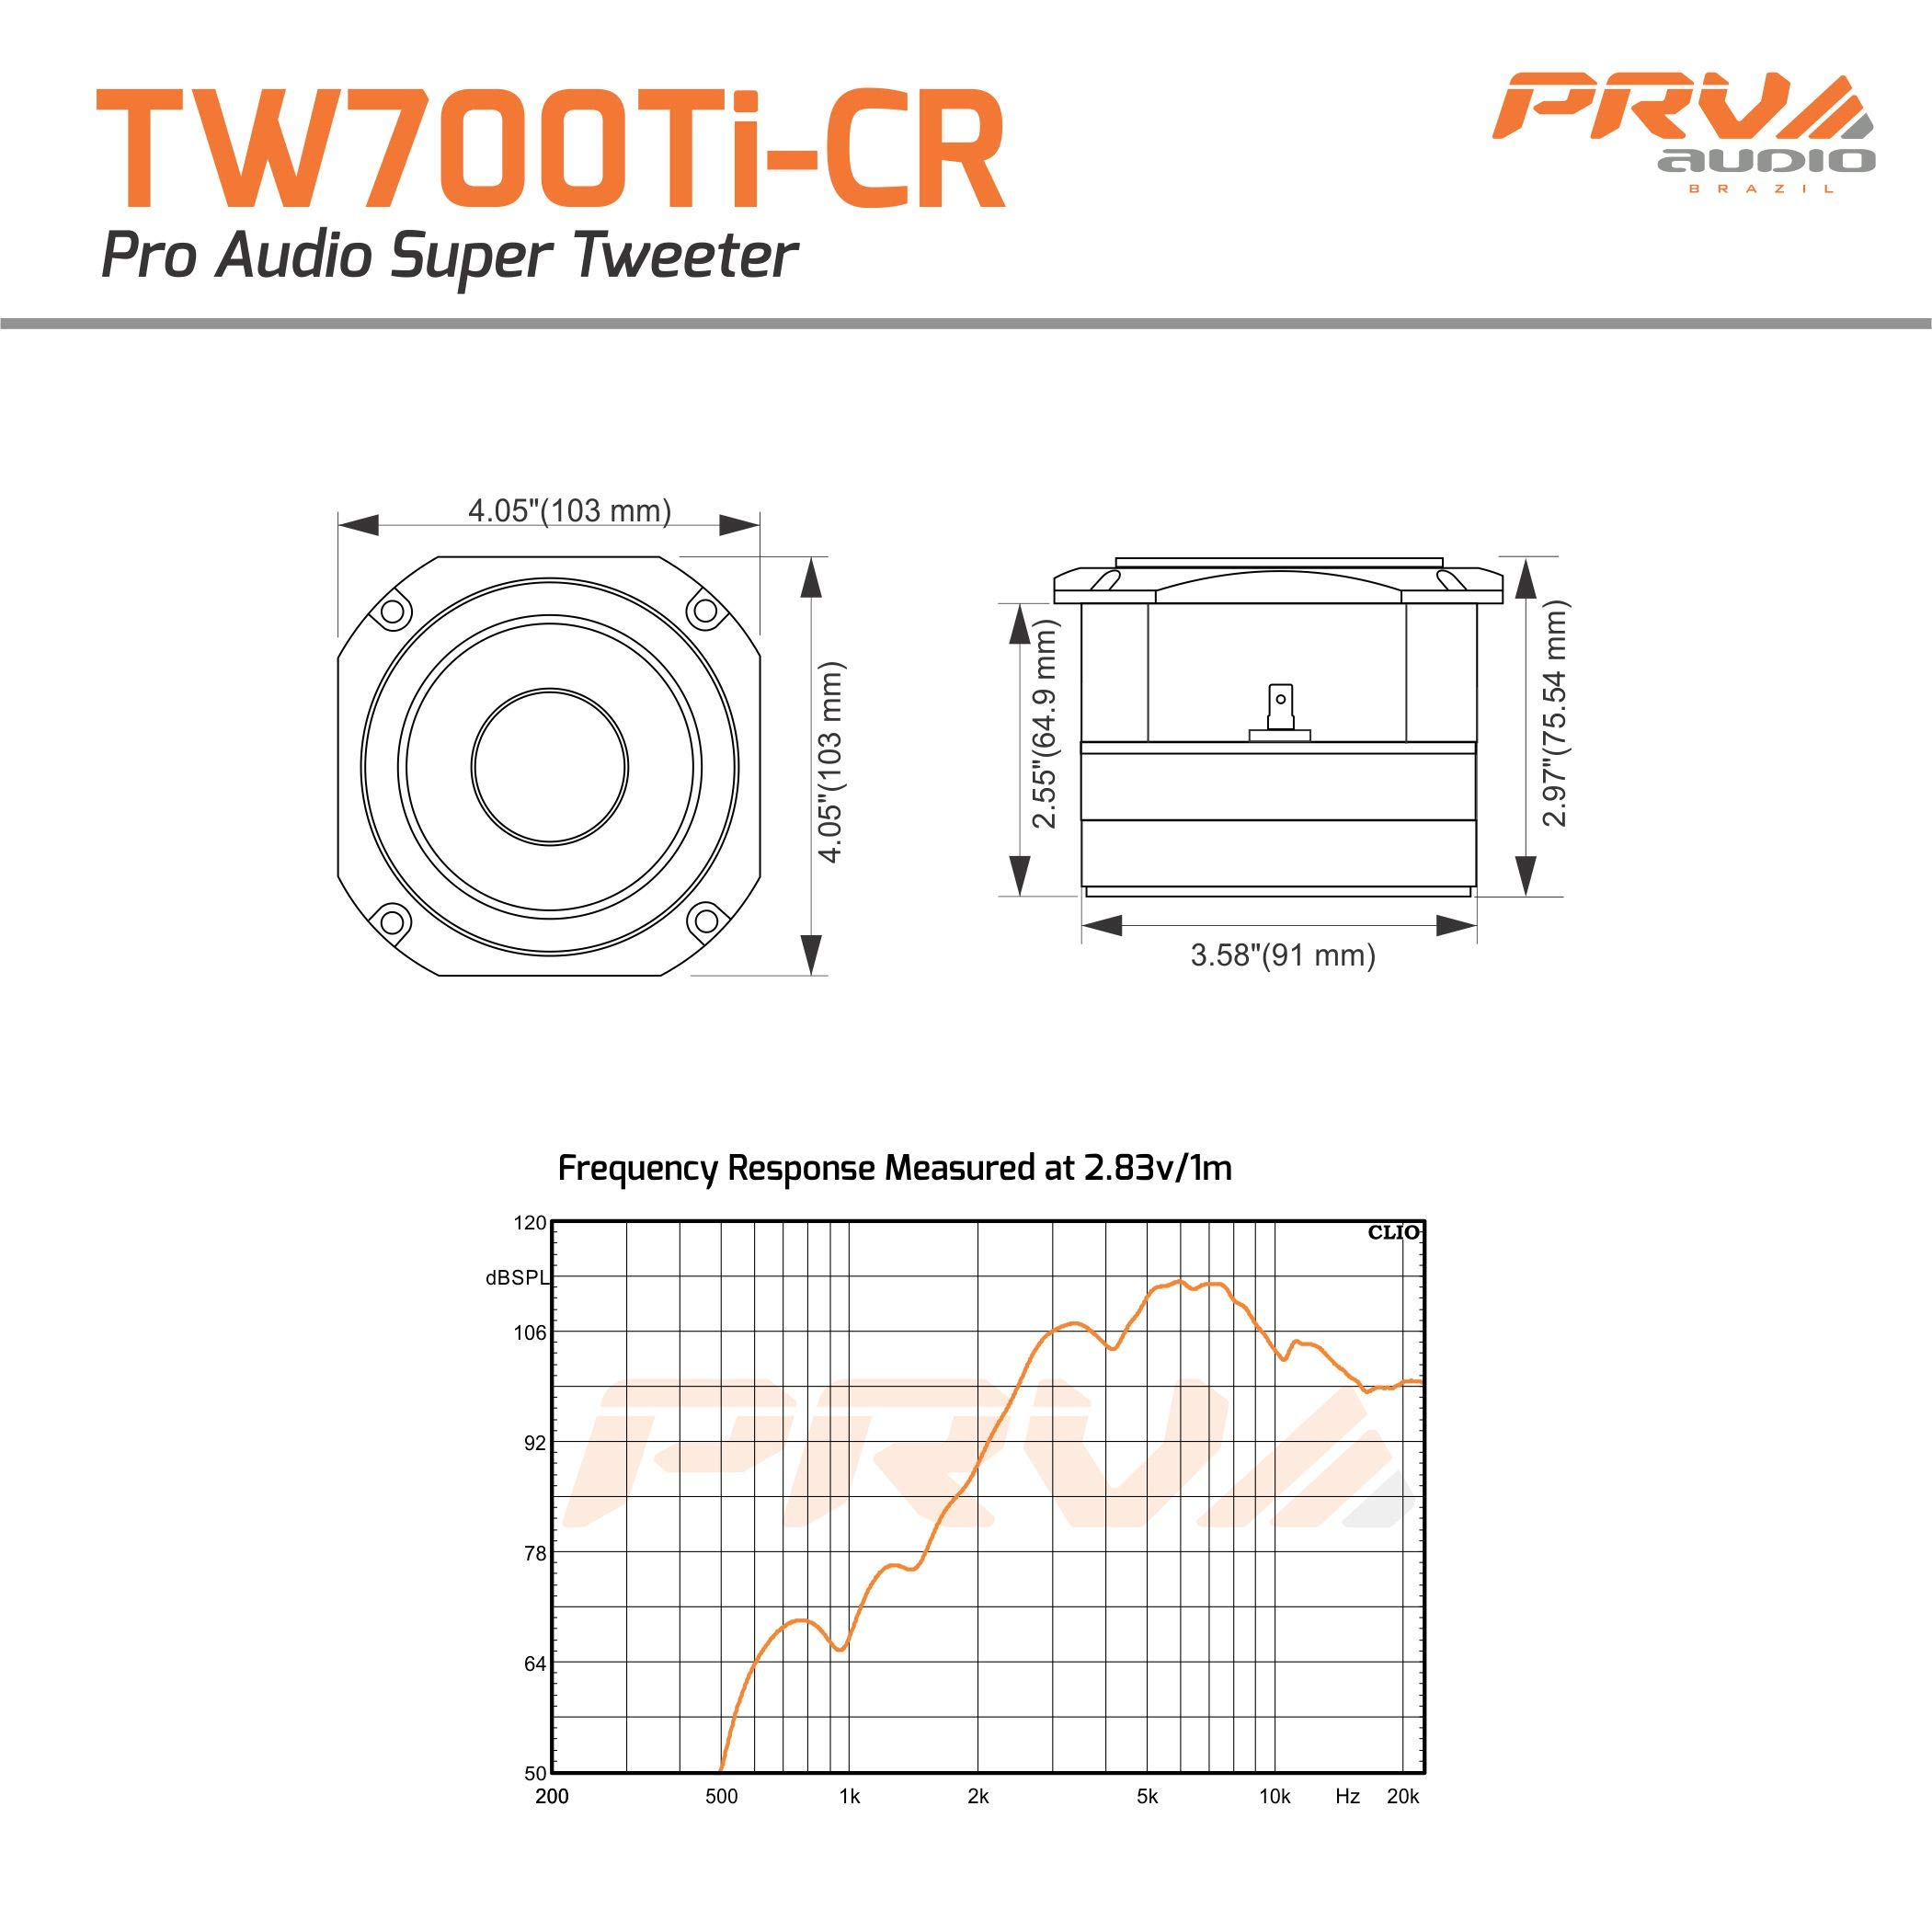 PRV Audio TW700Ti-CR Titanium 4'' Chrome Bullet Super Tweeter 8 ohms 1.5'' VC Pro Audio High Frequency Driver 107dB 120 Watts RMS – Built-in Polyester Capacitor